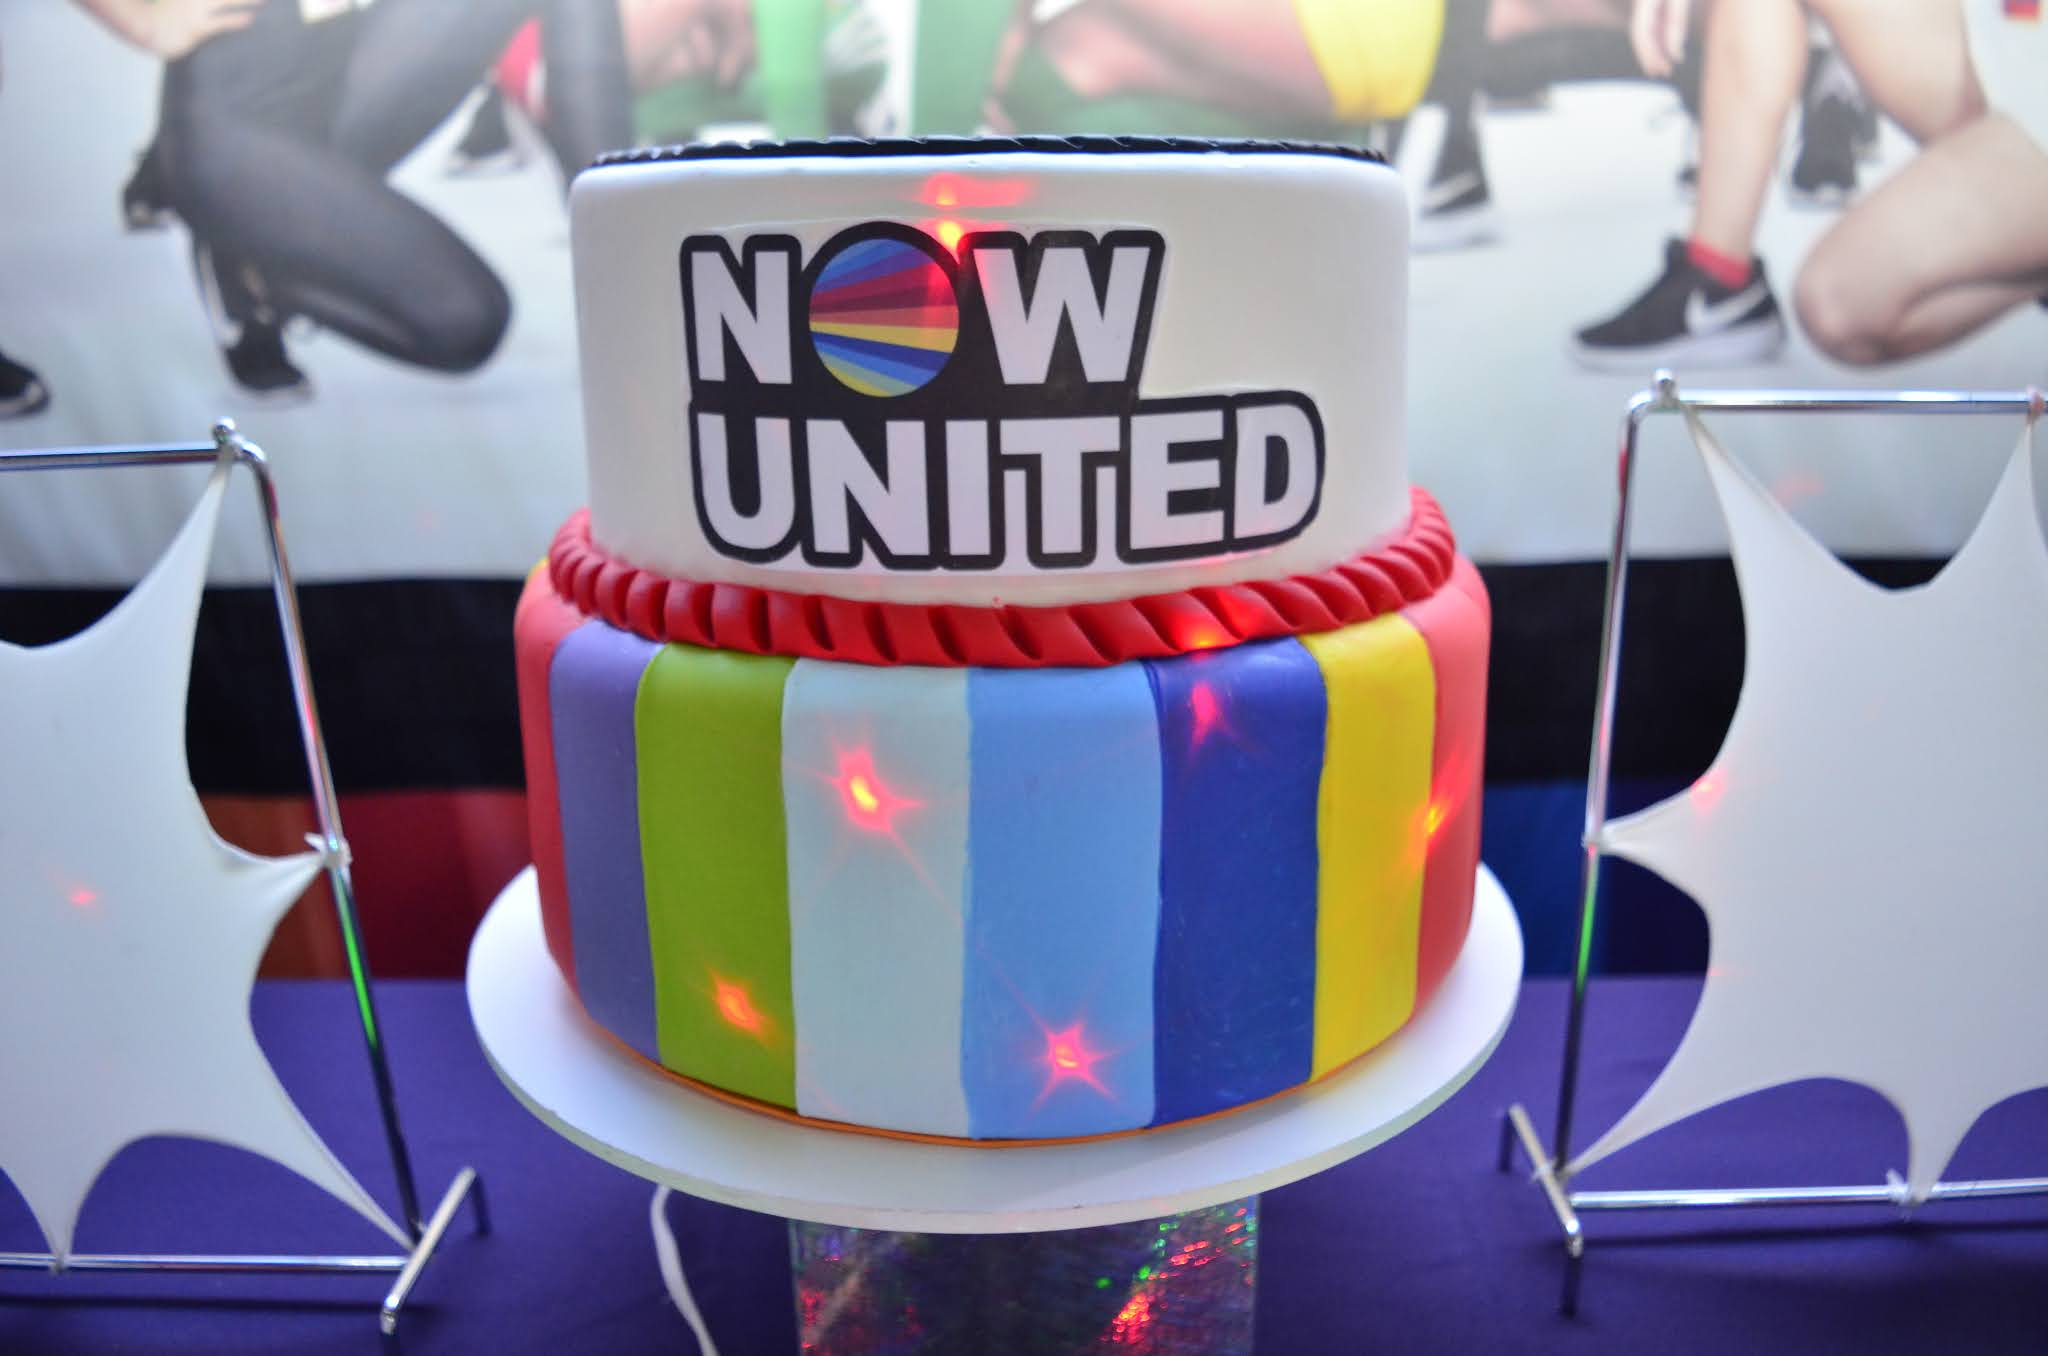 Bolo Now United Dois Andares